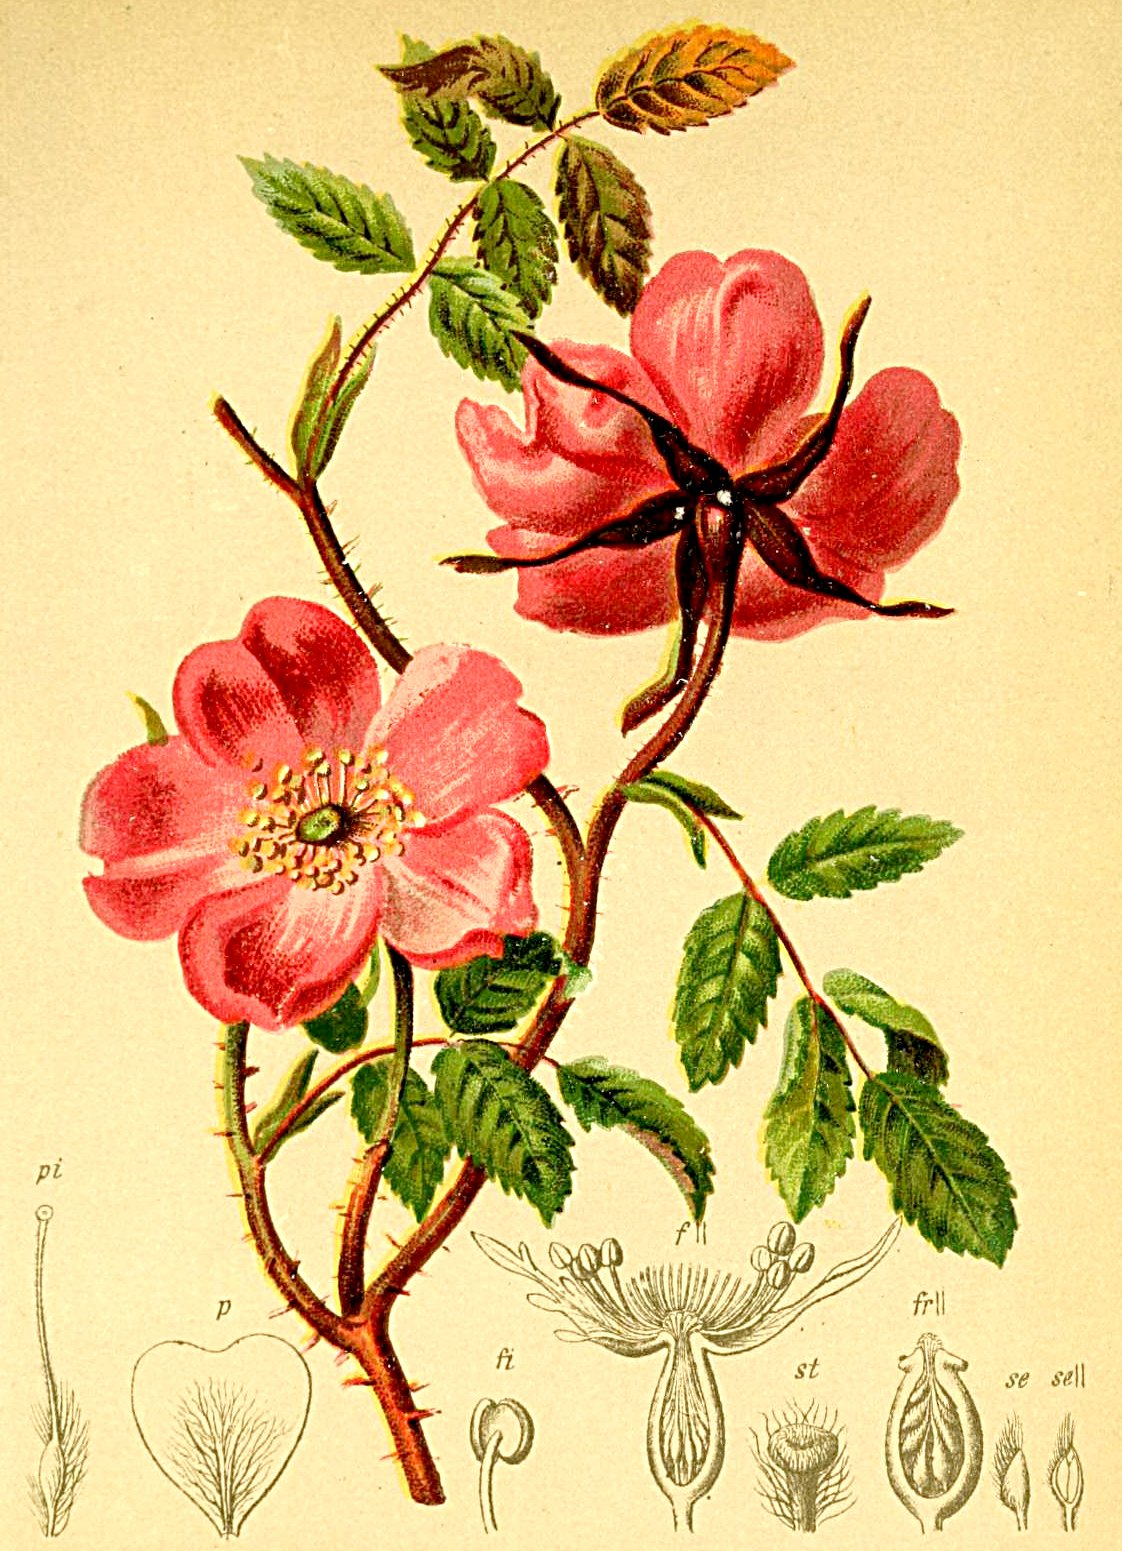 FileRosa Alpina Atlas Alpenflorajpg Wikimedia Commons - Rosa alpina